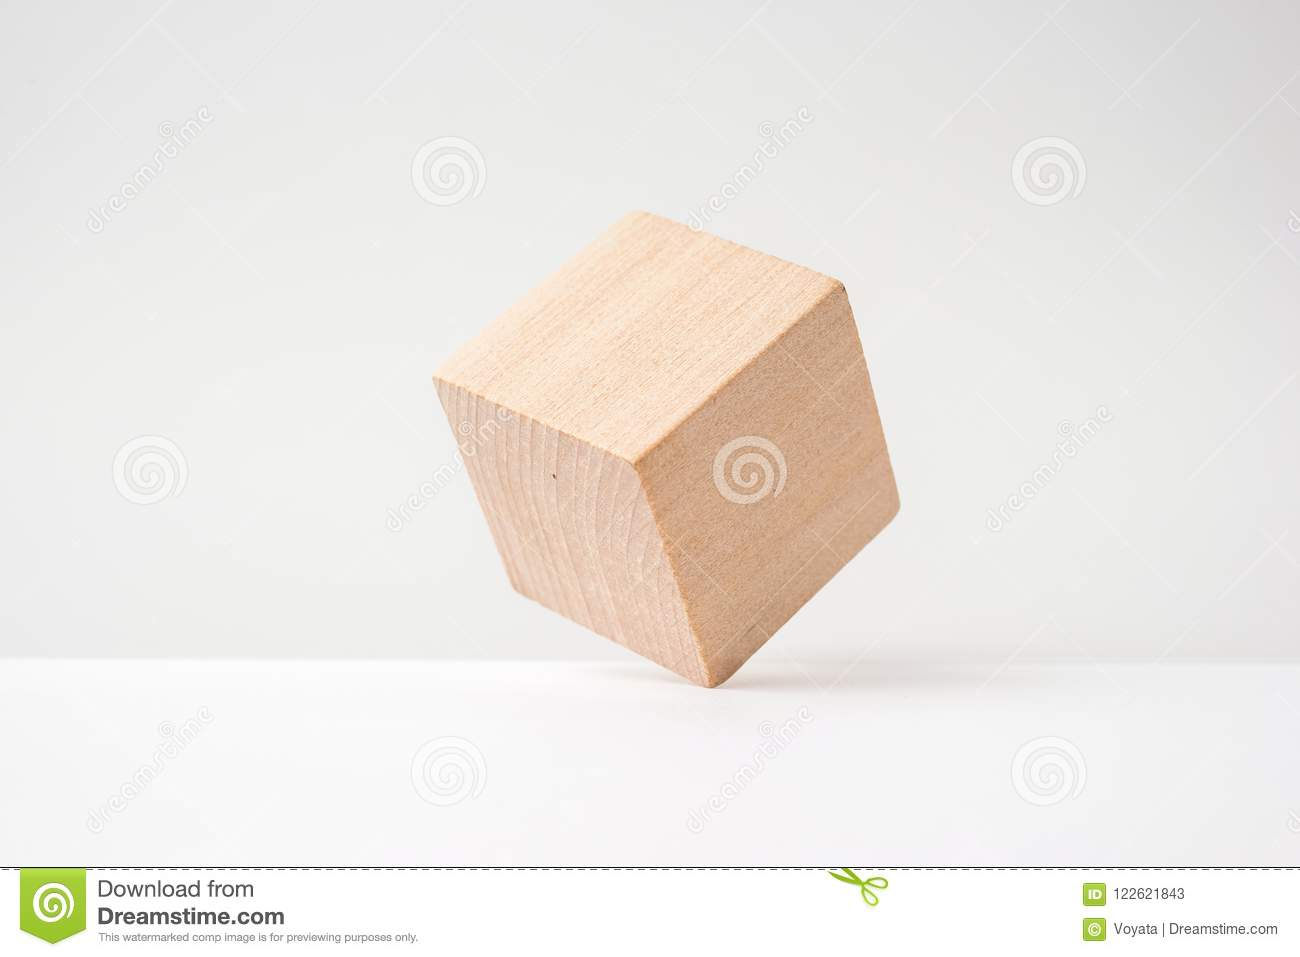 Abstract geometric real wooden cube with surreal layout on white background